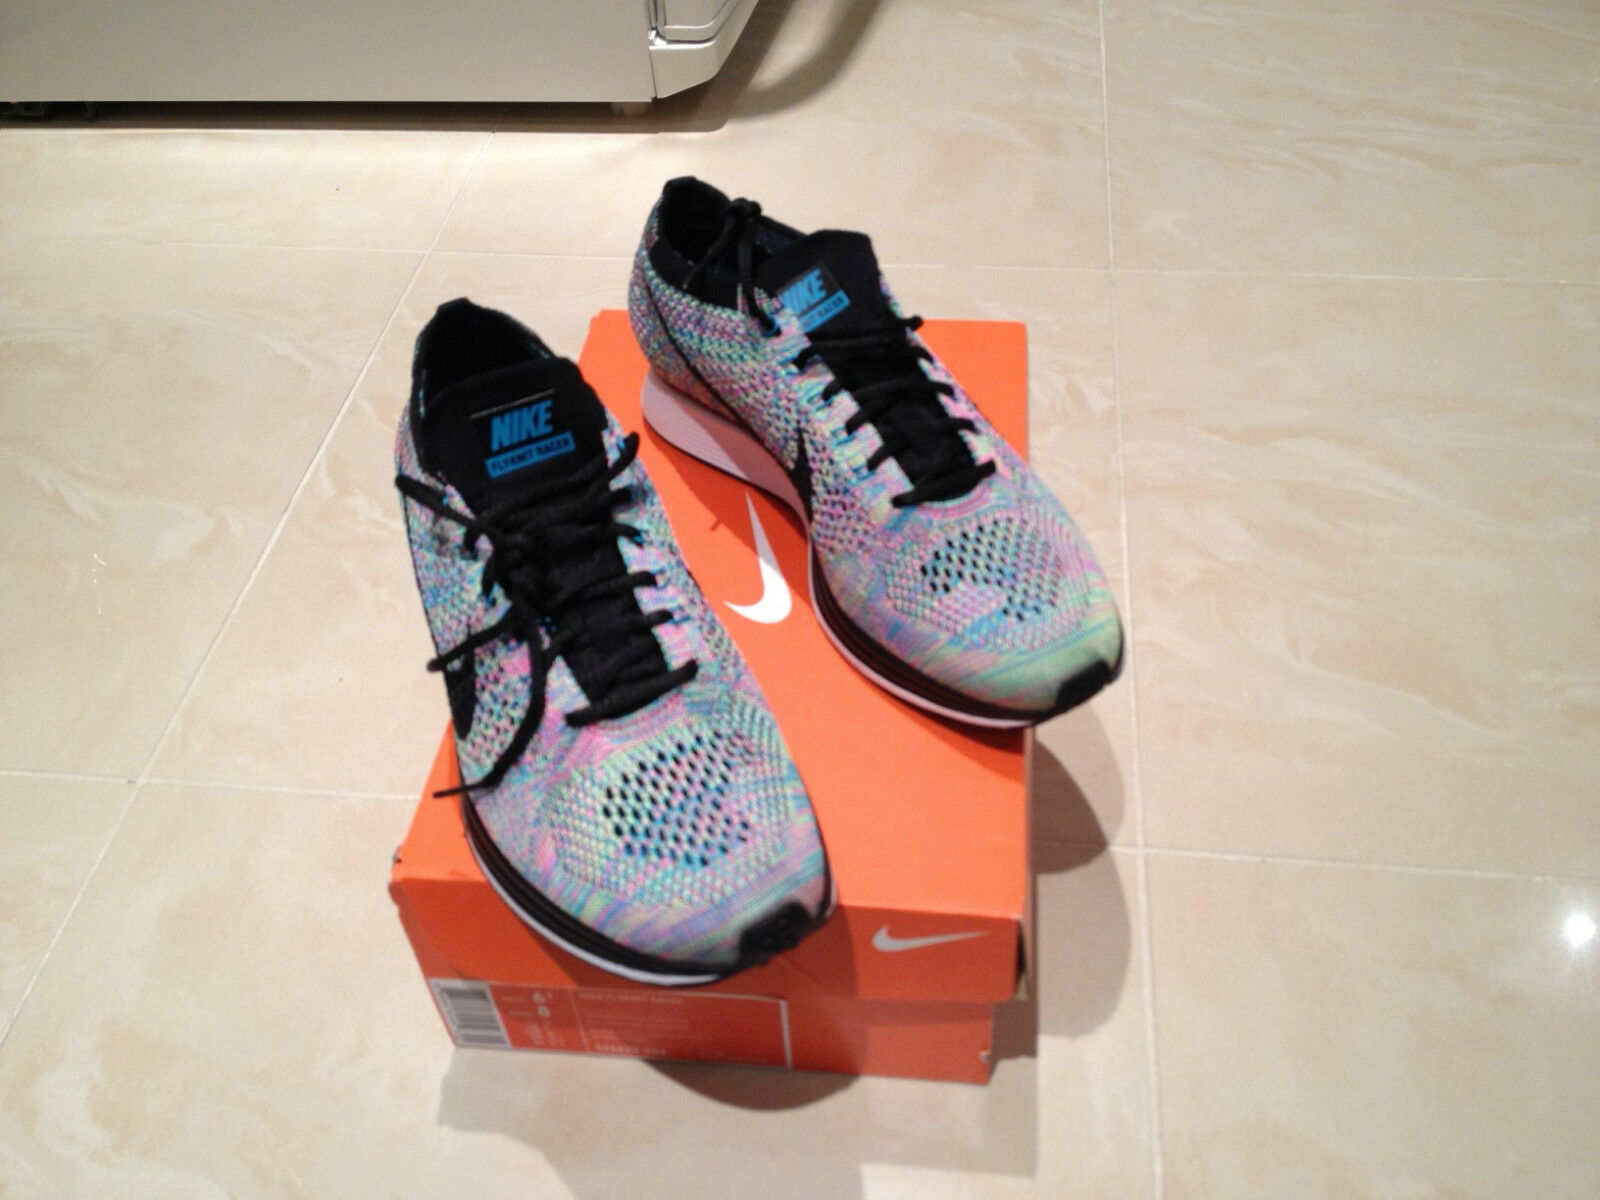 NIKE FLYKNIT RACER RAINBOW MULTICOLOUR 2.0 11 SIZE UK 6 7 11 2.0 12 LIMITED EDITION NEW 19b5db